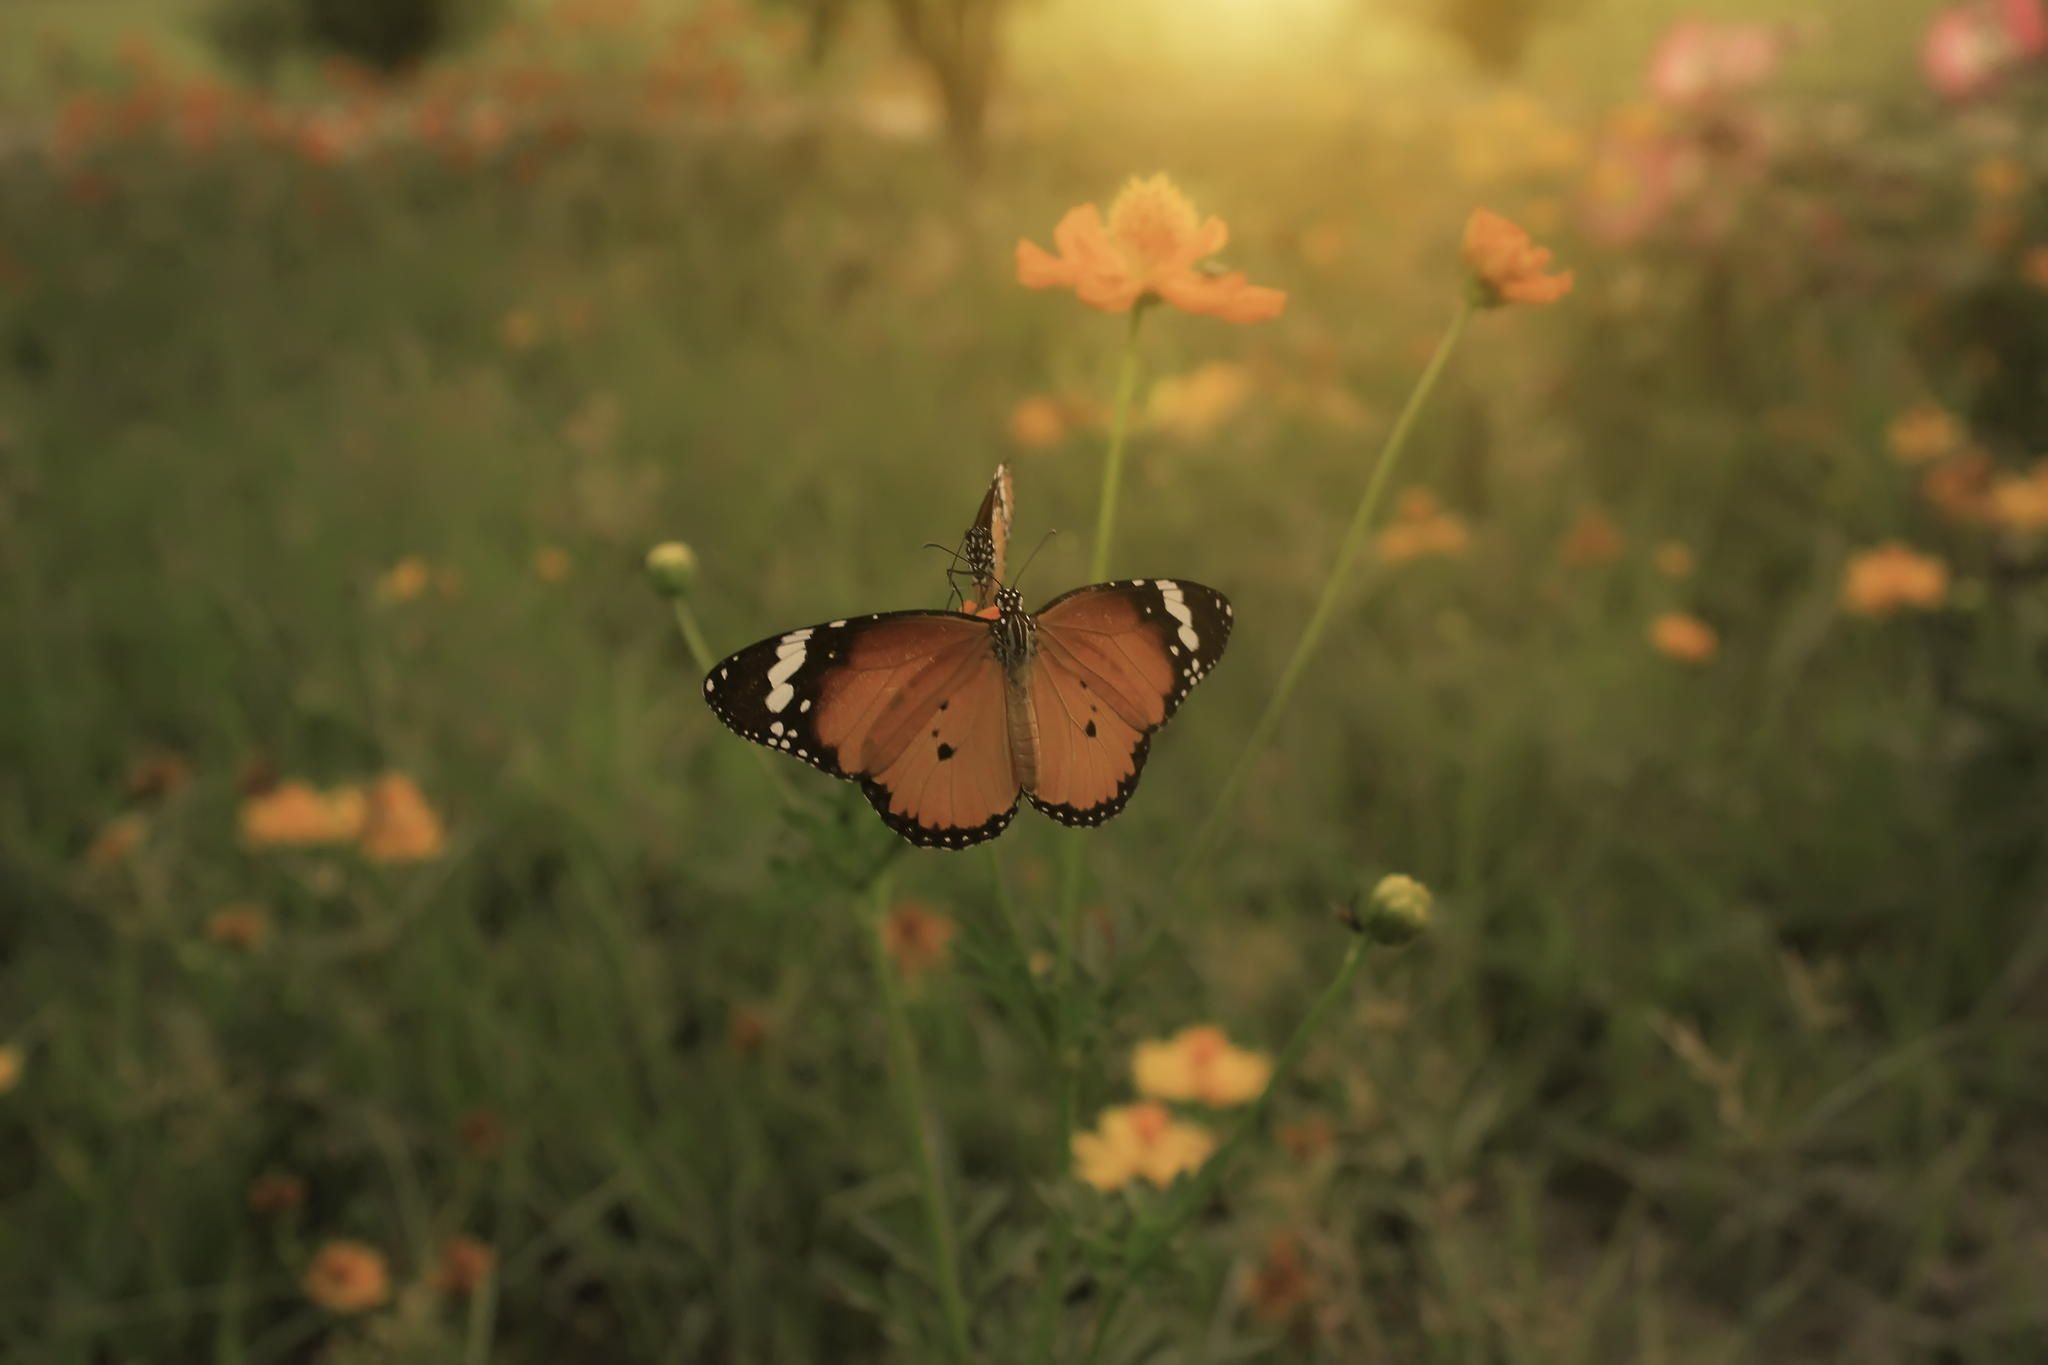 butterflies by Furqi Arts on 500px